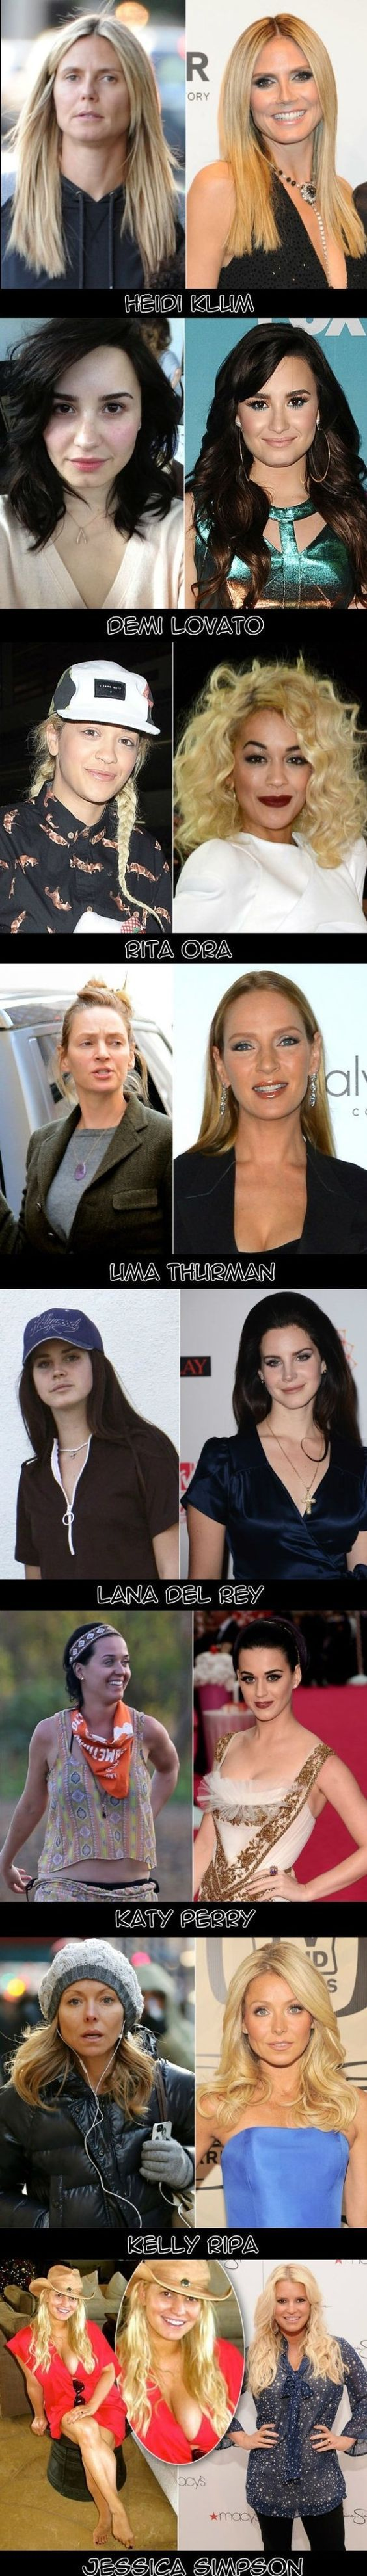 Some Celebrities Without Makeup - www.funny-pictures-blog.com: